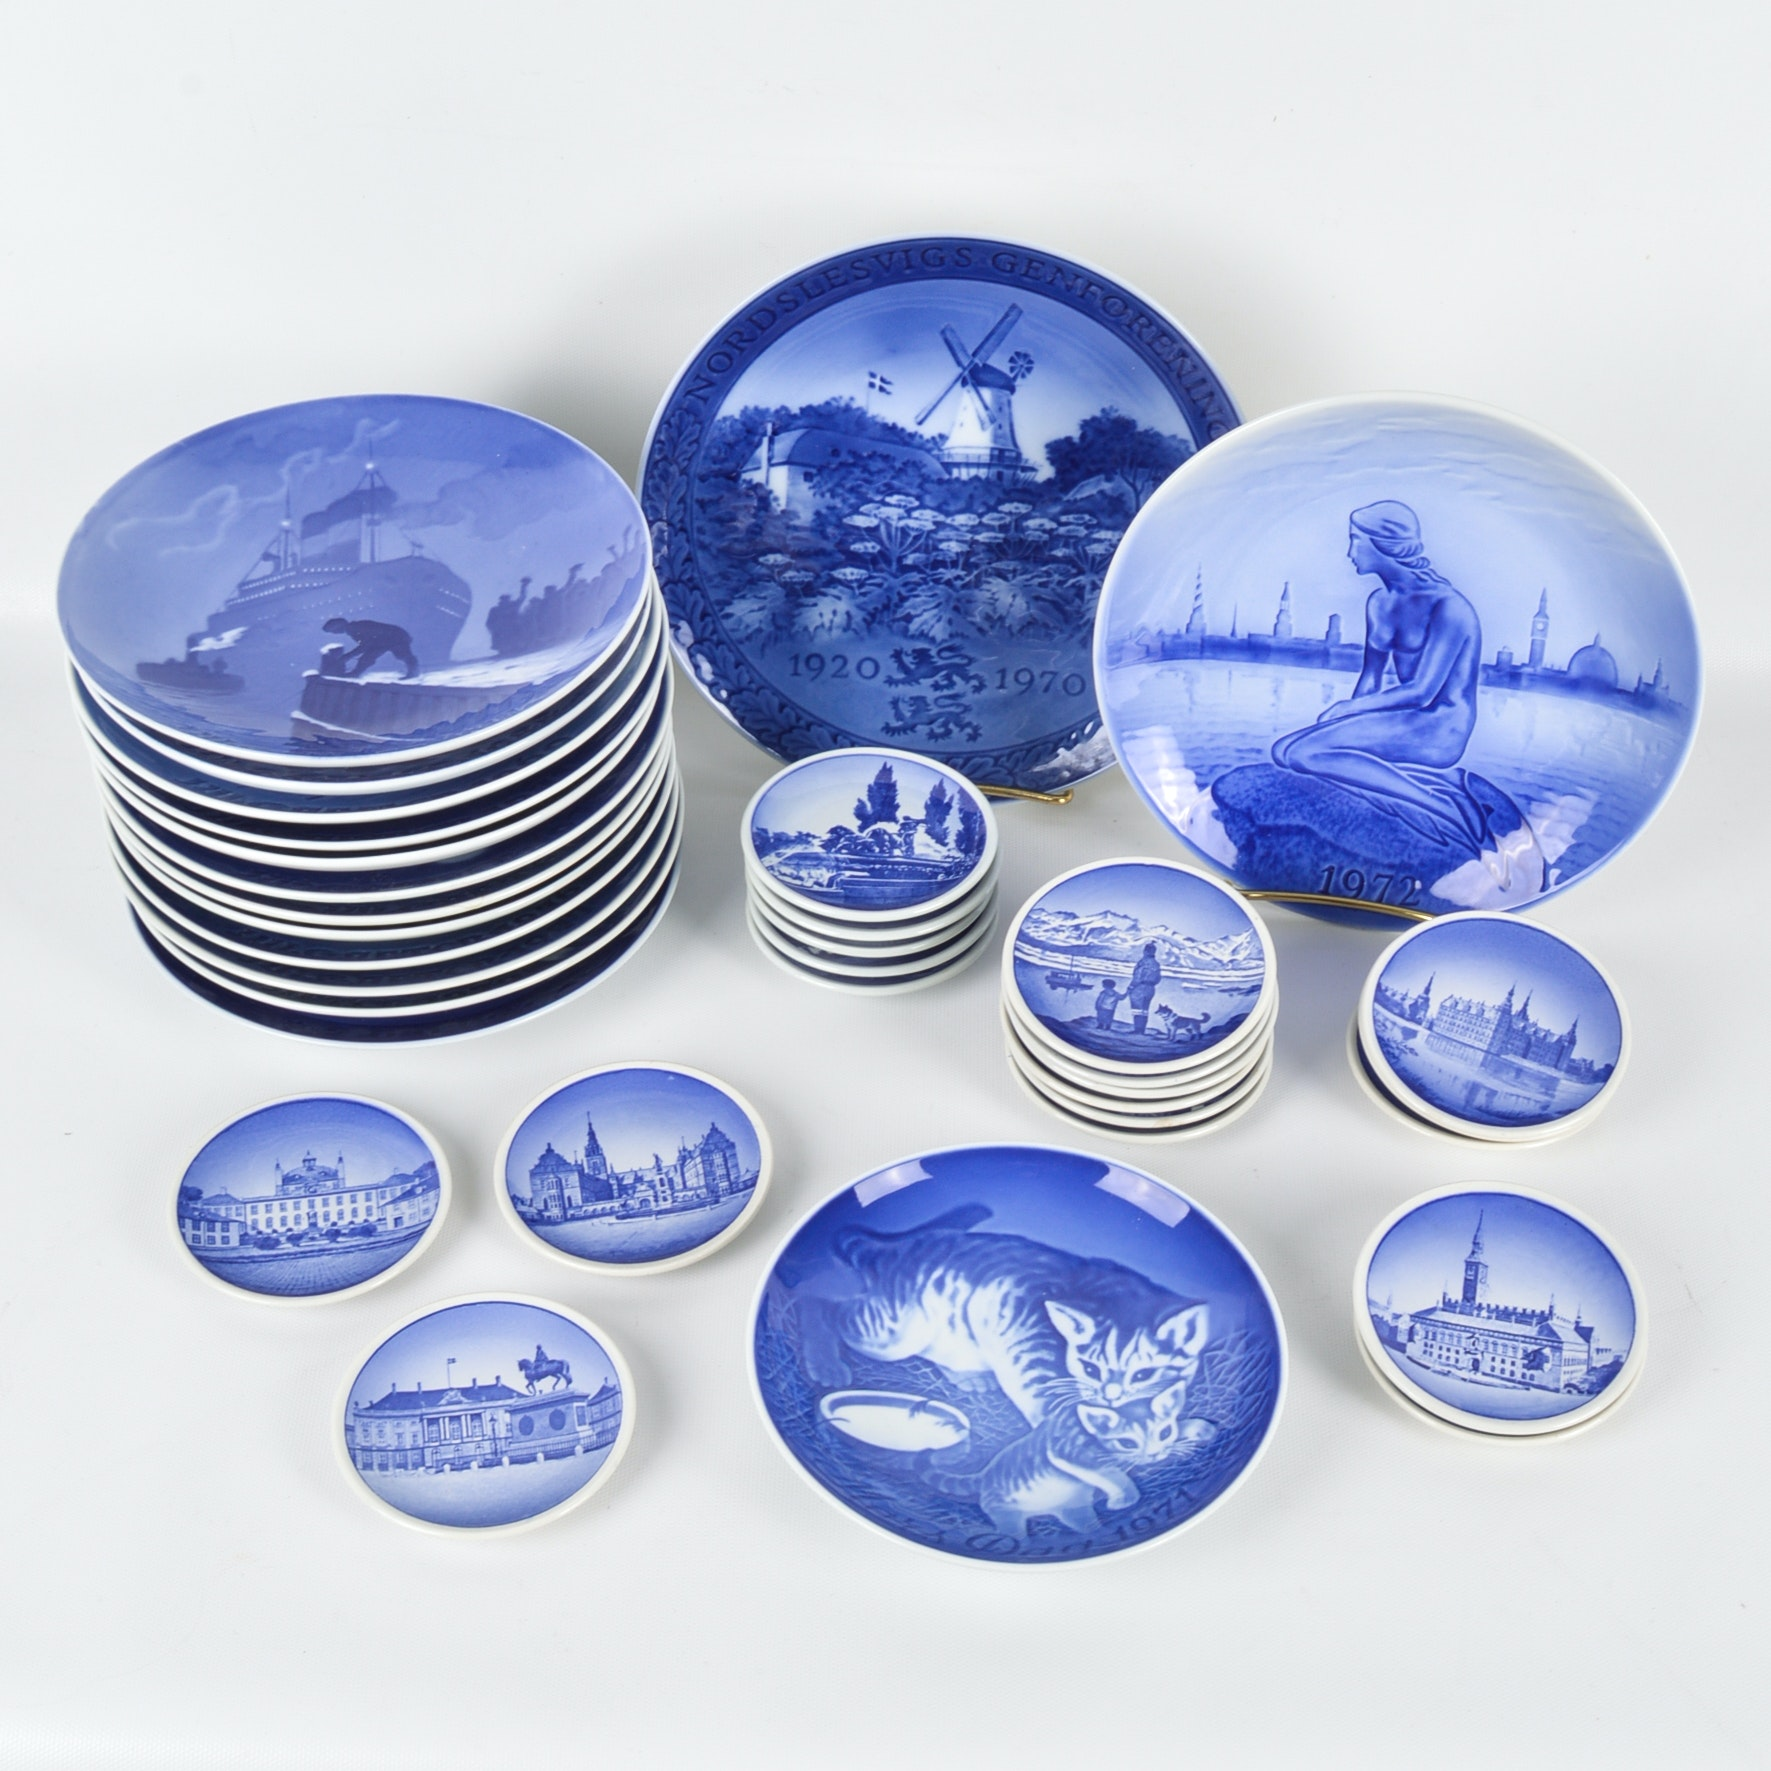 Vintage Bing & Grøndahl, Royal Copenhagen and Aluminia Porcelain Collection